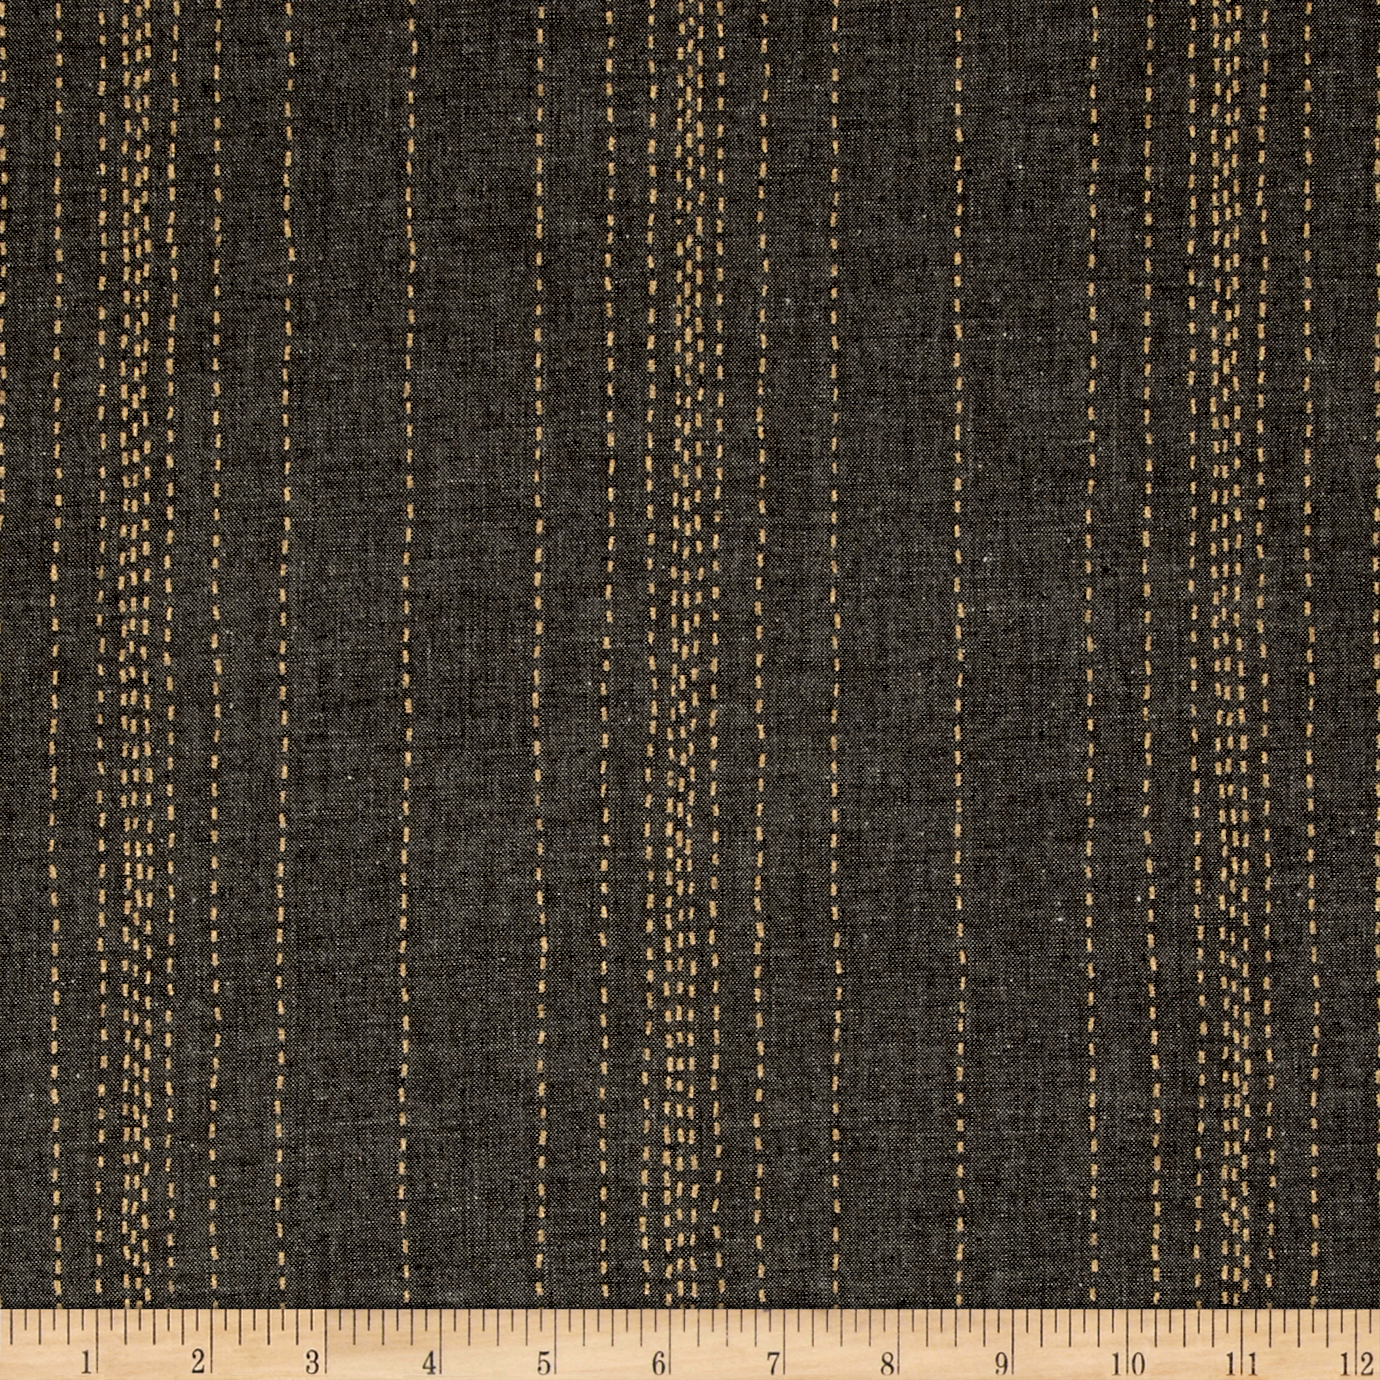 Andover Printed Chambray Stitch Lines Black/Gold Fabric by Andover & Makower in USA